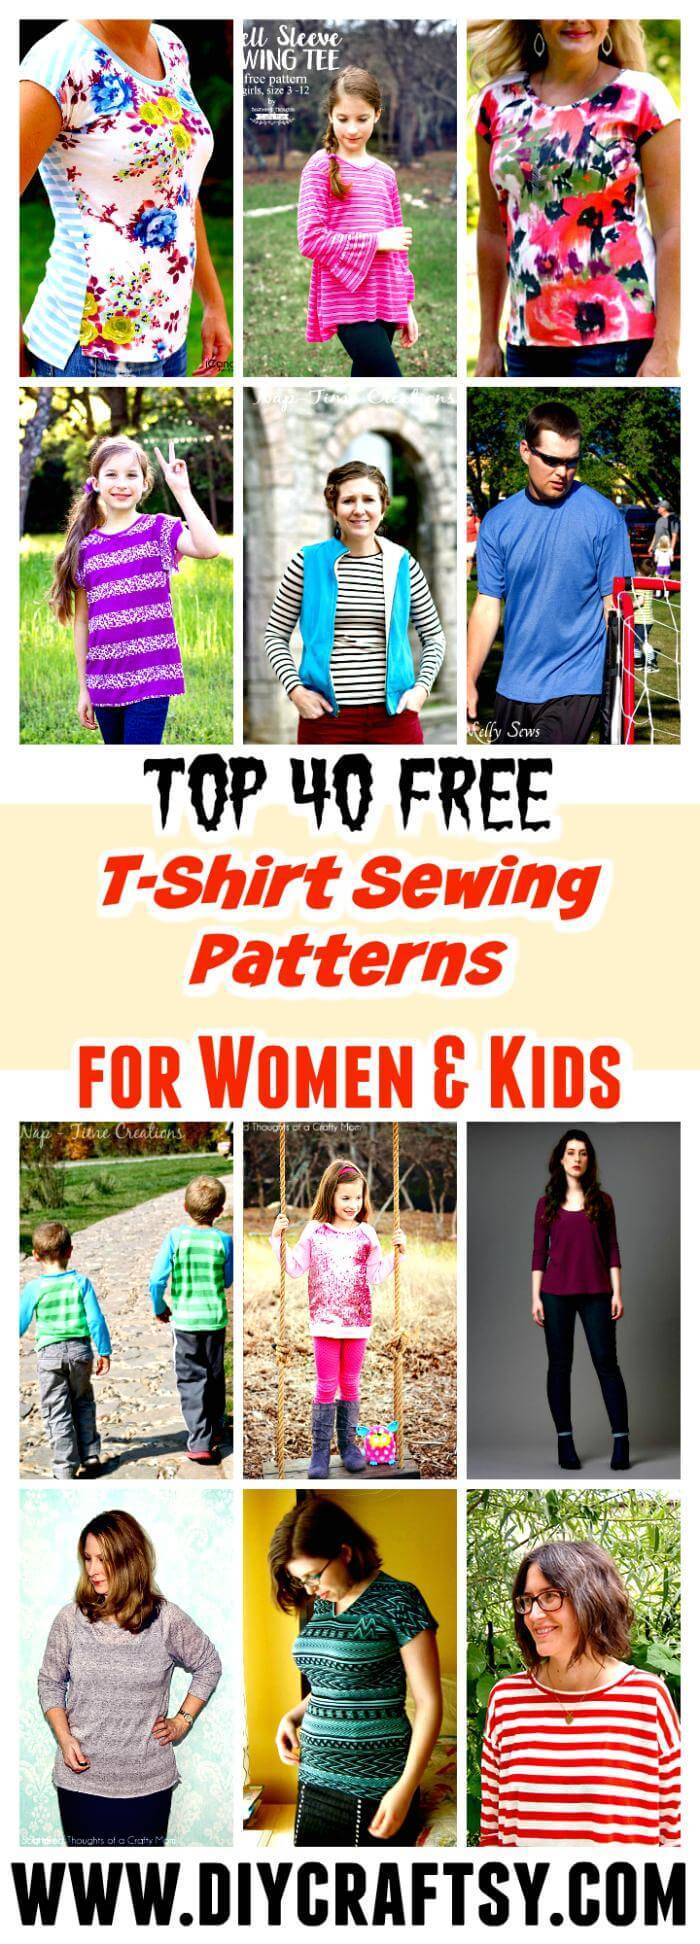 T-Shirt Sewing Patterns